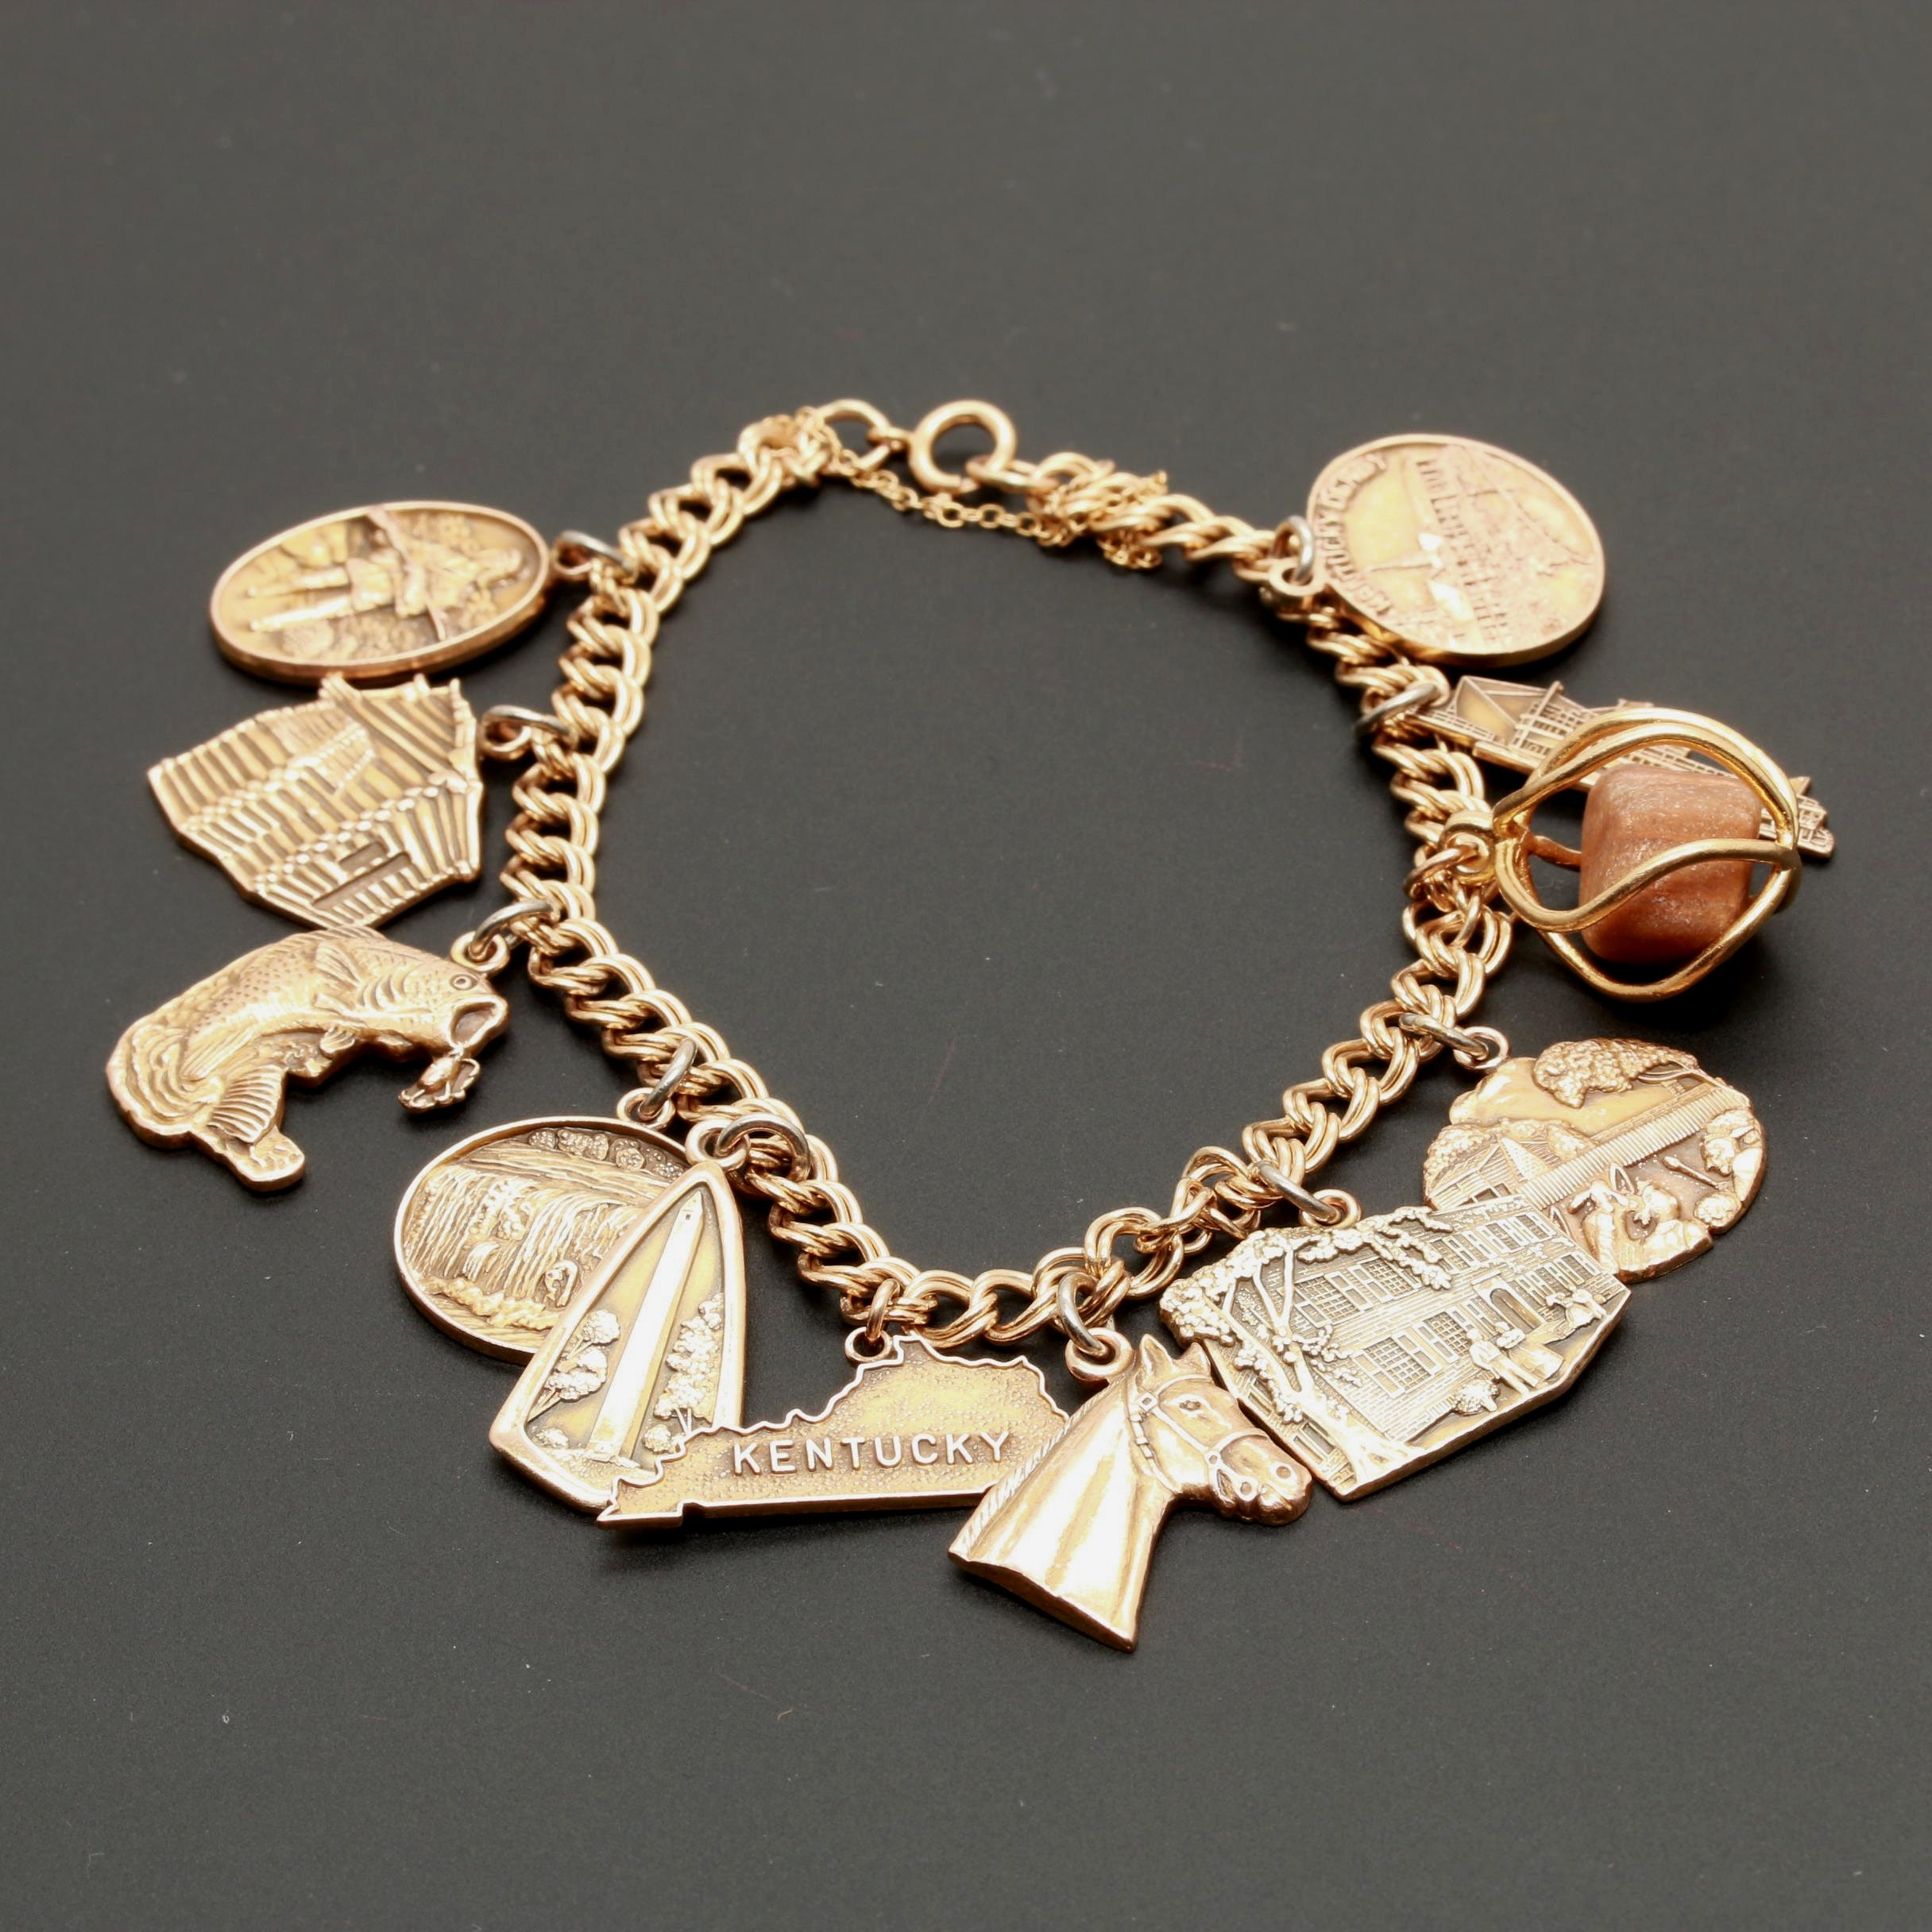 Vintage 14K Yellow Gold Charm Bracelet with Kentucky Themed Charms